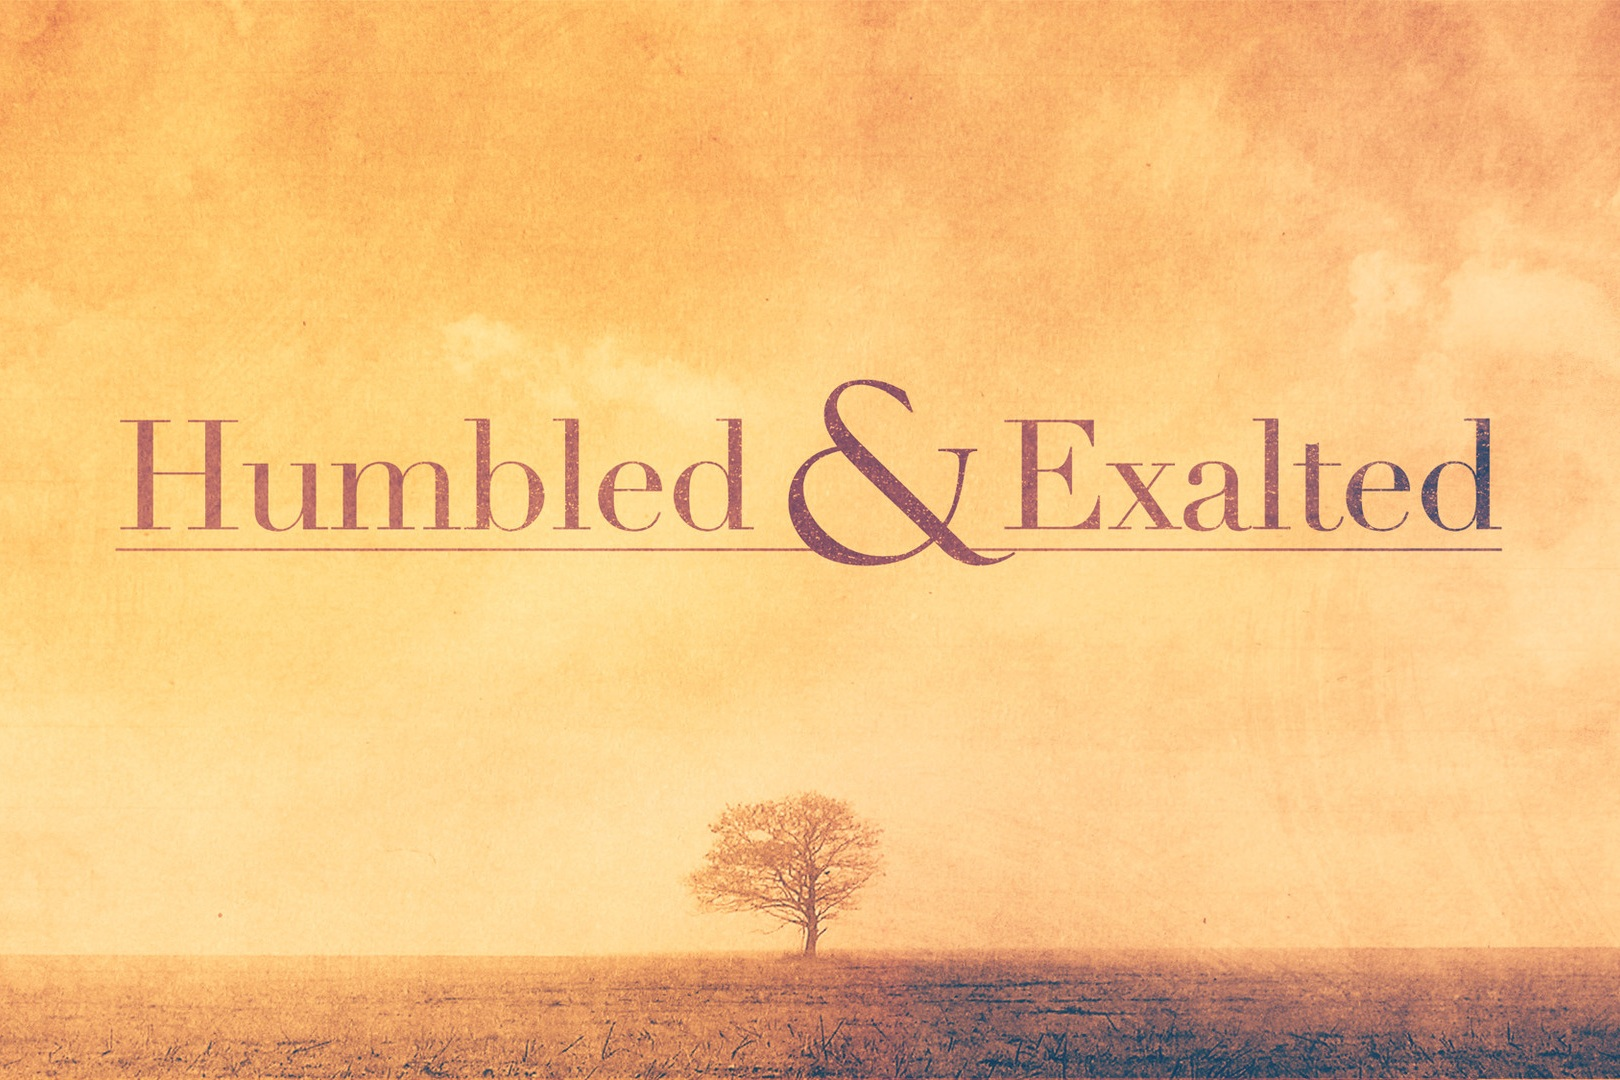 humbled_exalted-title-2-Wide+16x9.jpg